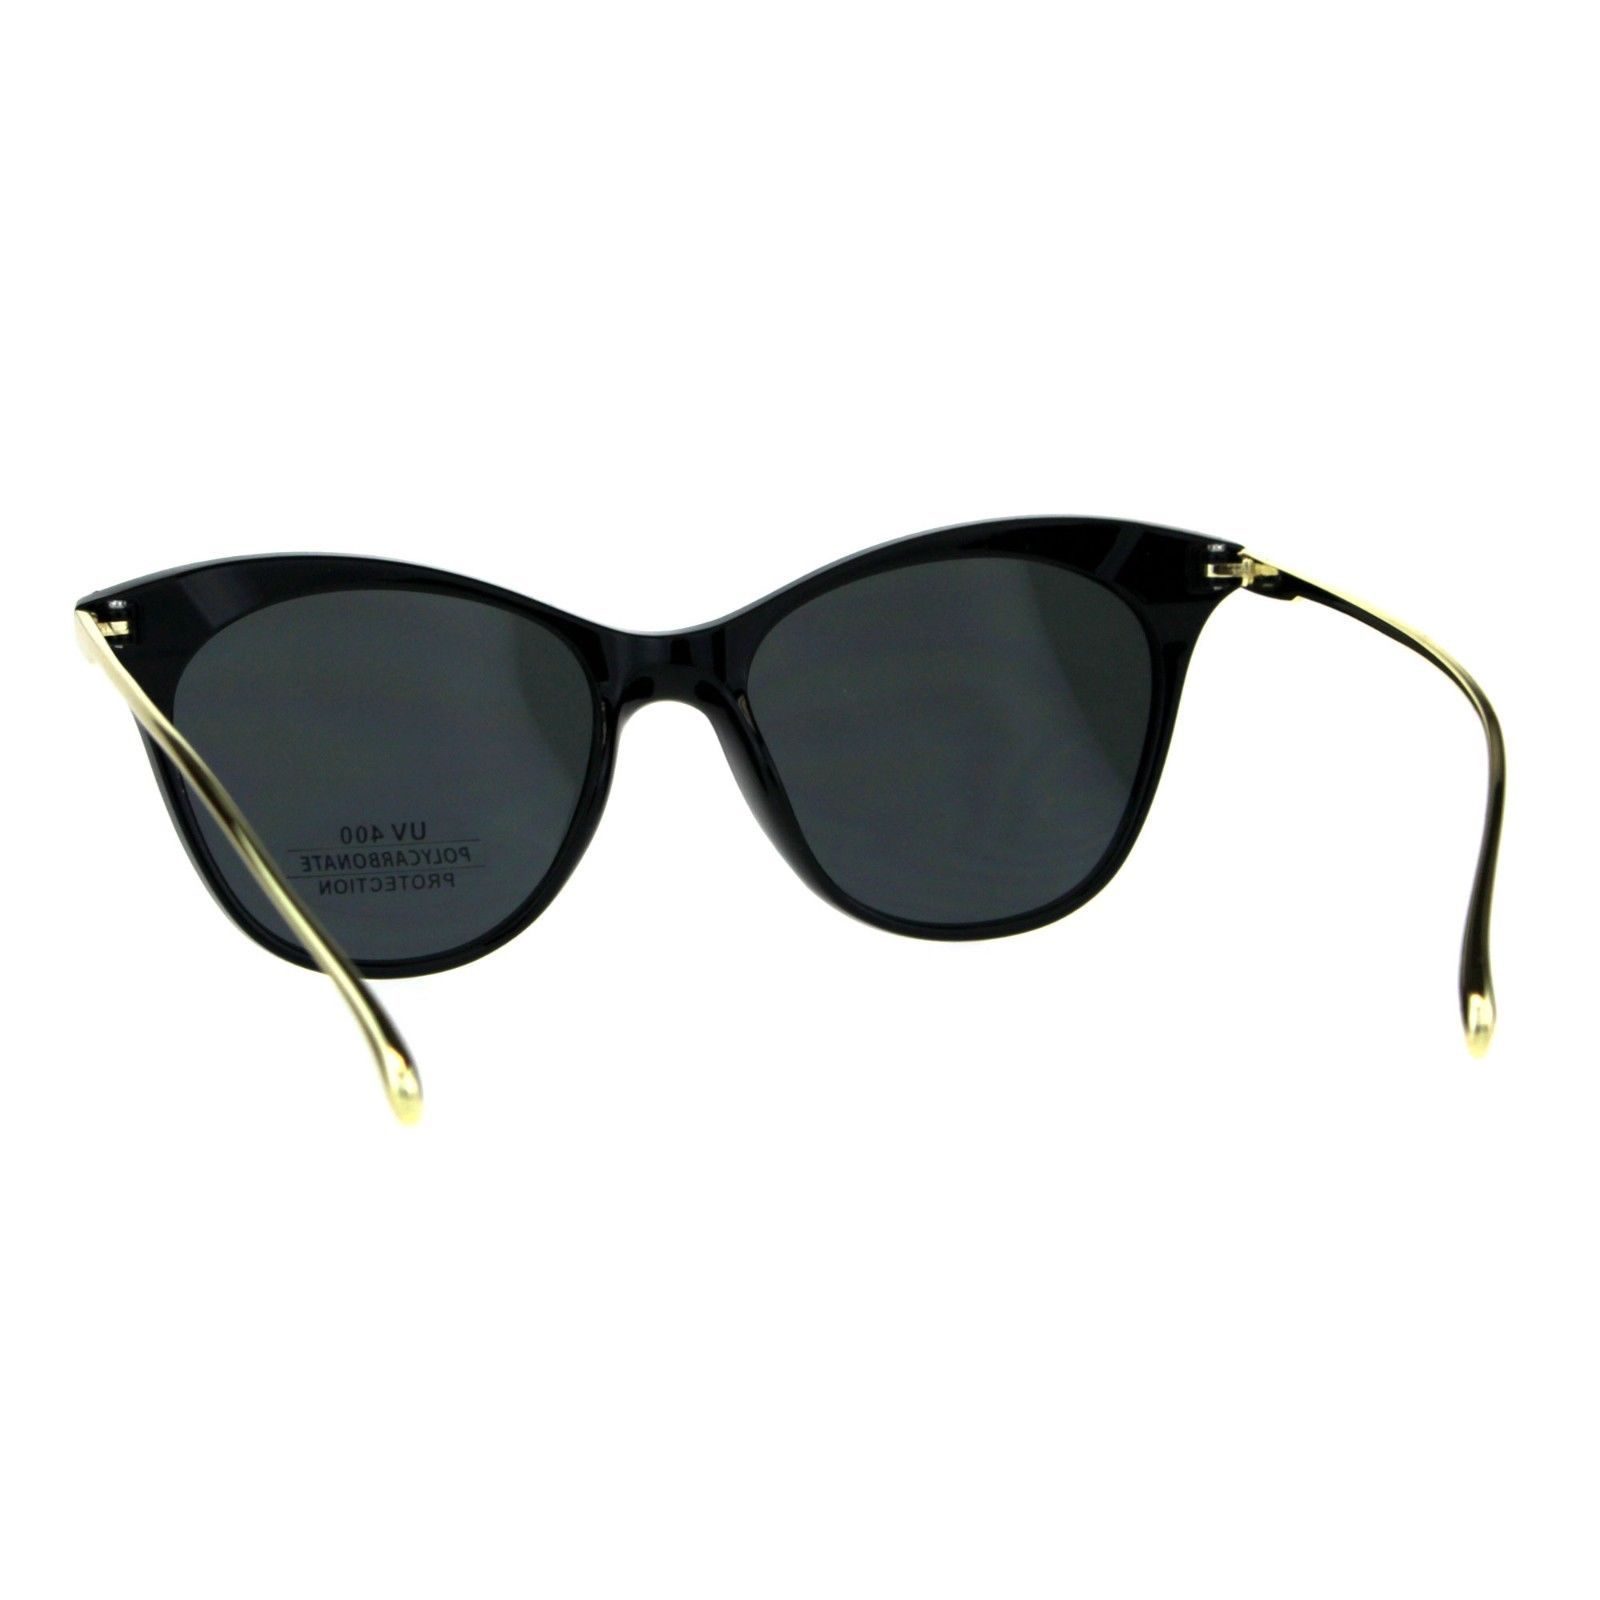 Butterfly Cateye Sunglasses Womens Chic Fashion Shades Gold Metal Temple